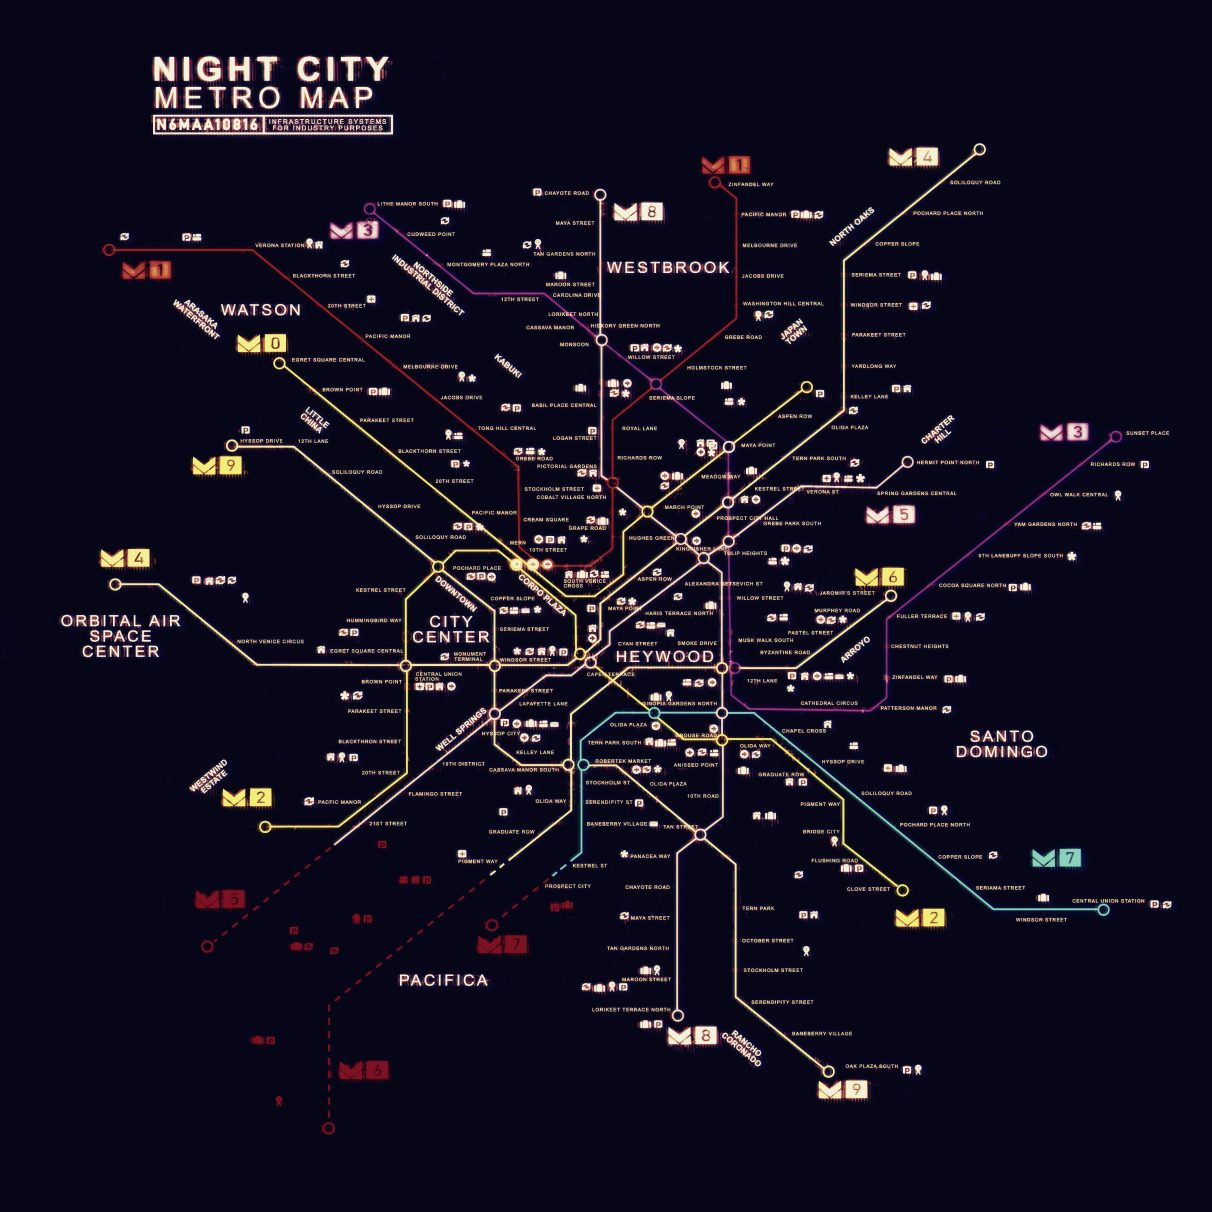 Here is the full Metro map of Night City, recreated from a glimpse of the map from one of Cyberpunk 2077's trailers.